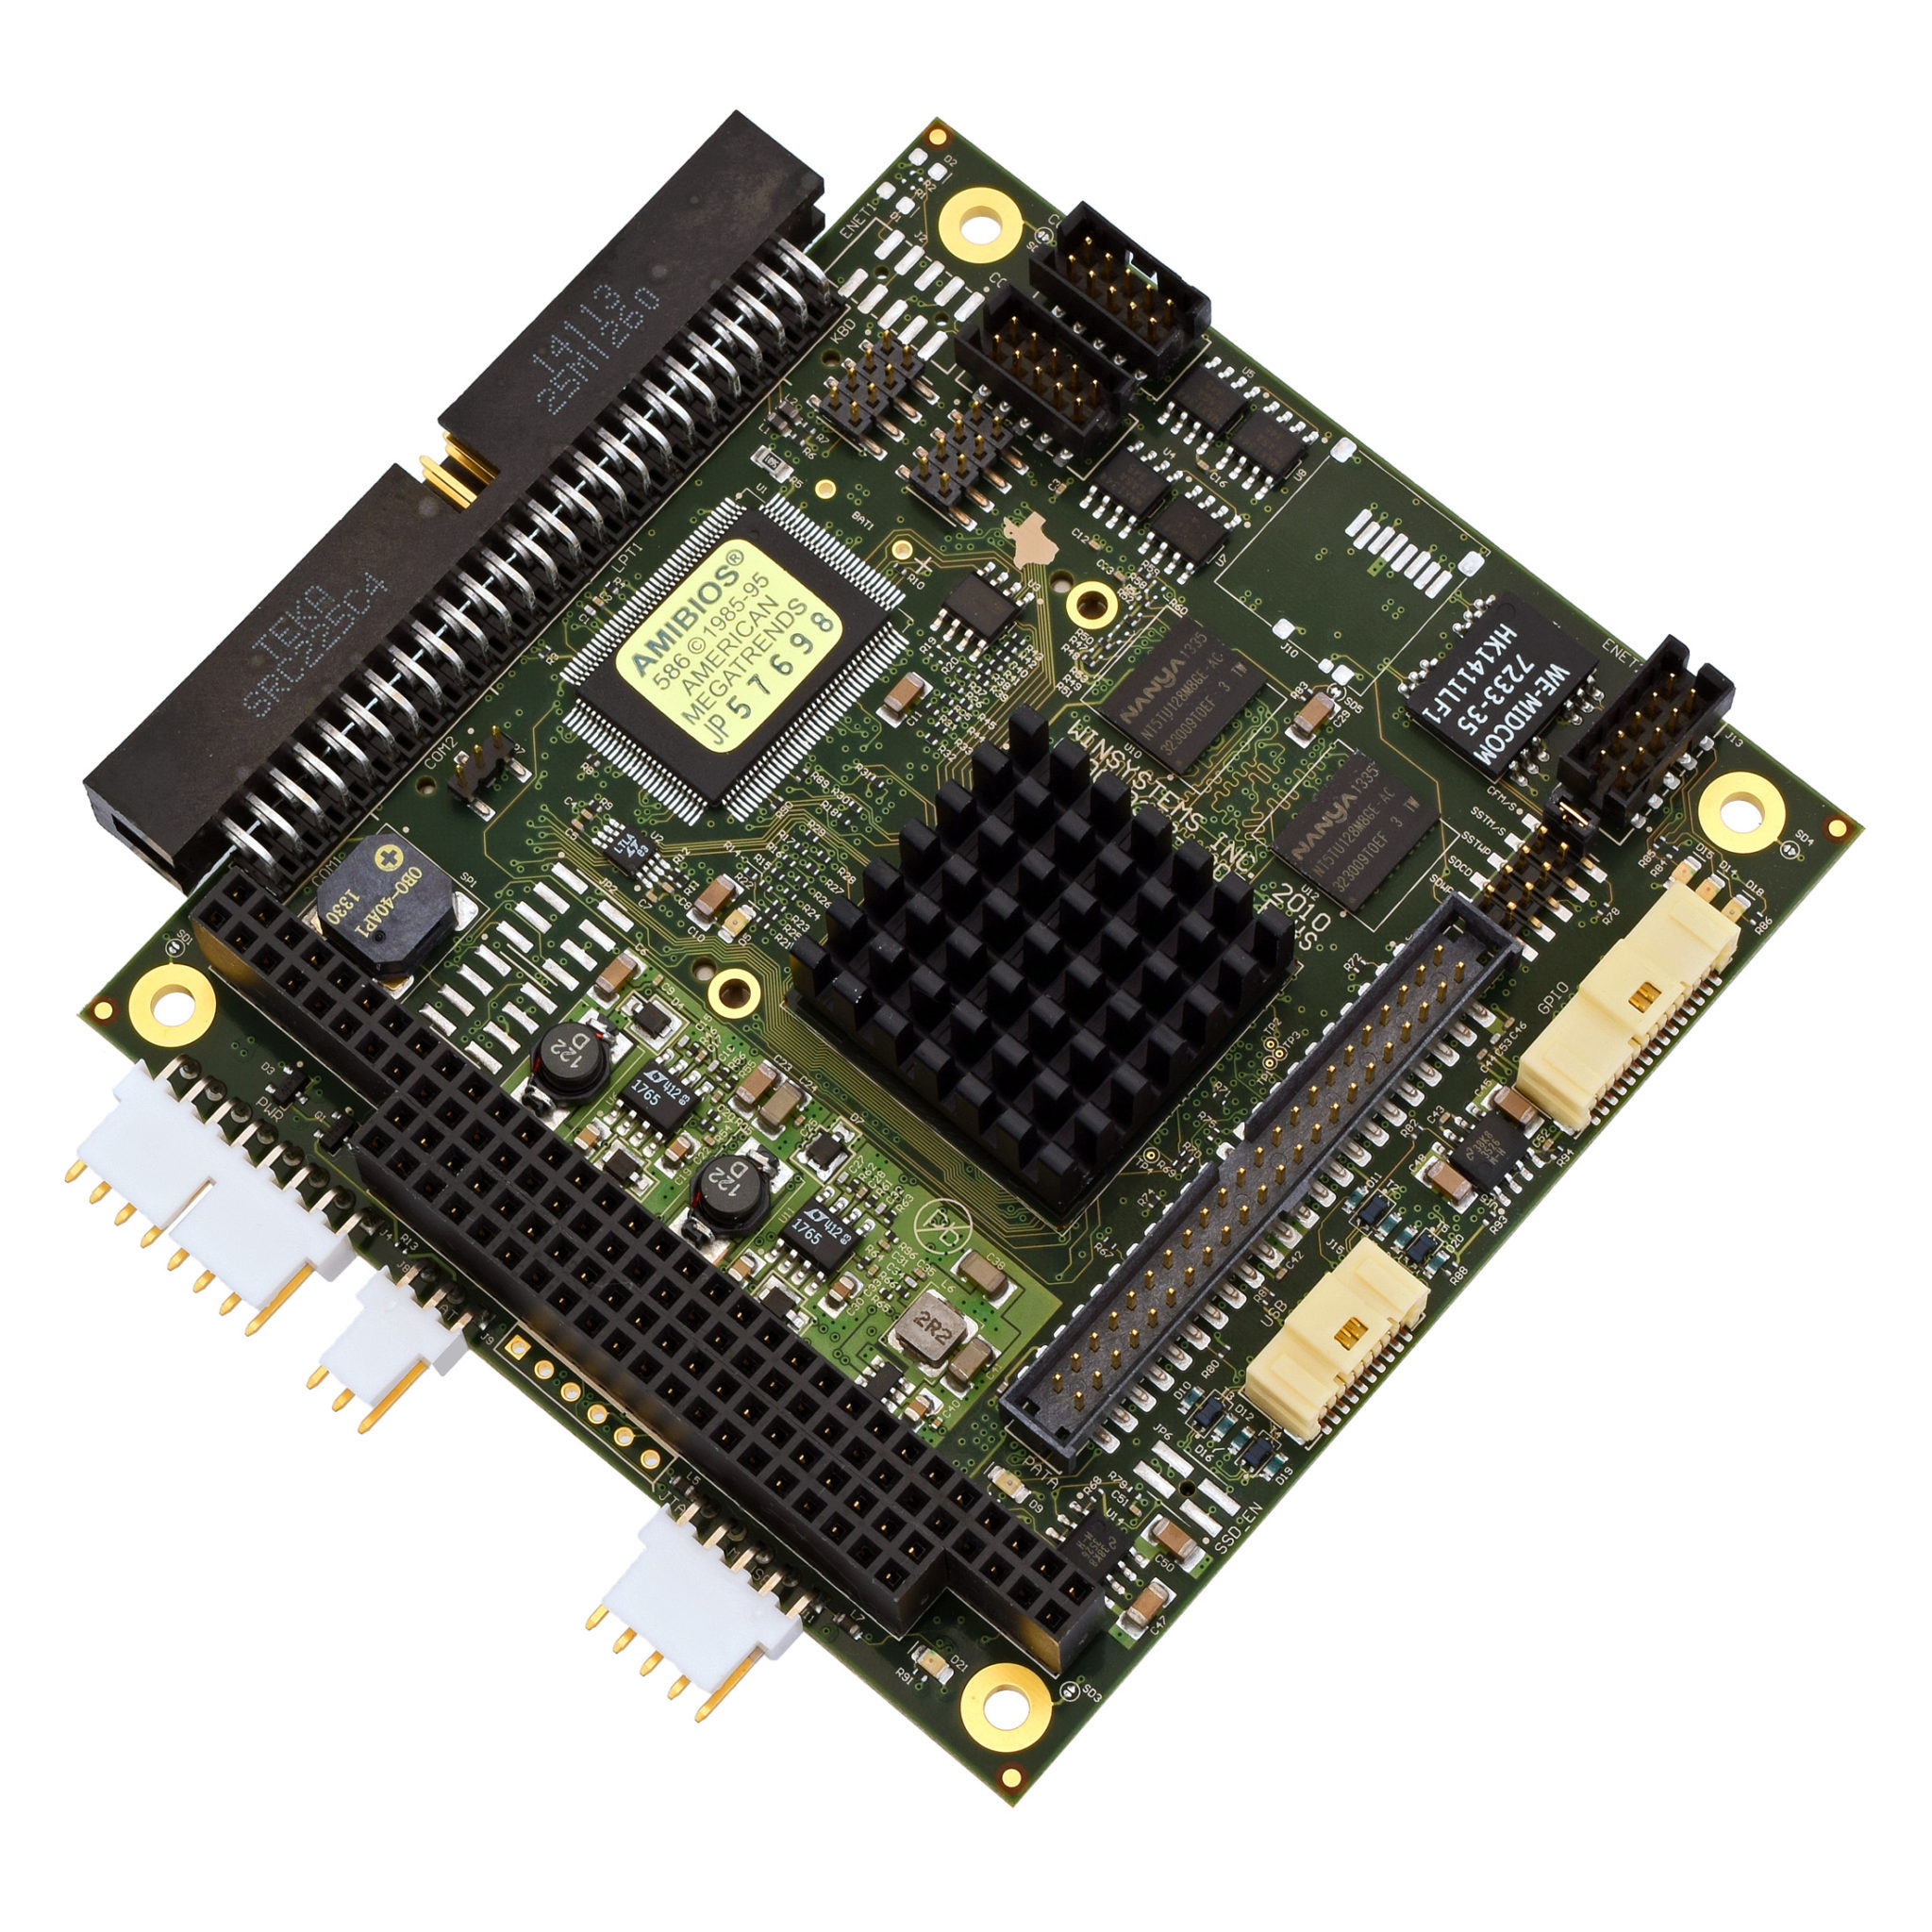 PC104 Computer - PC104 SBC Boards - PC104 Plus - WinSystems